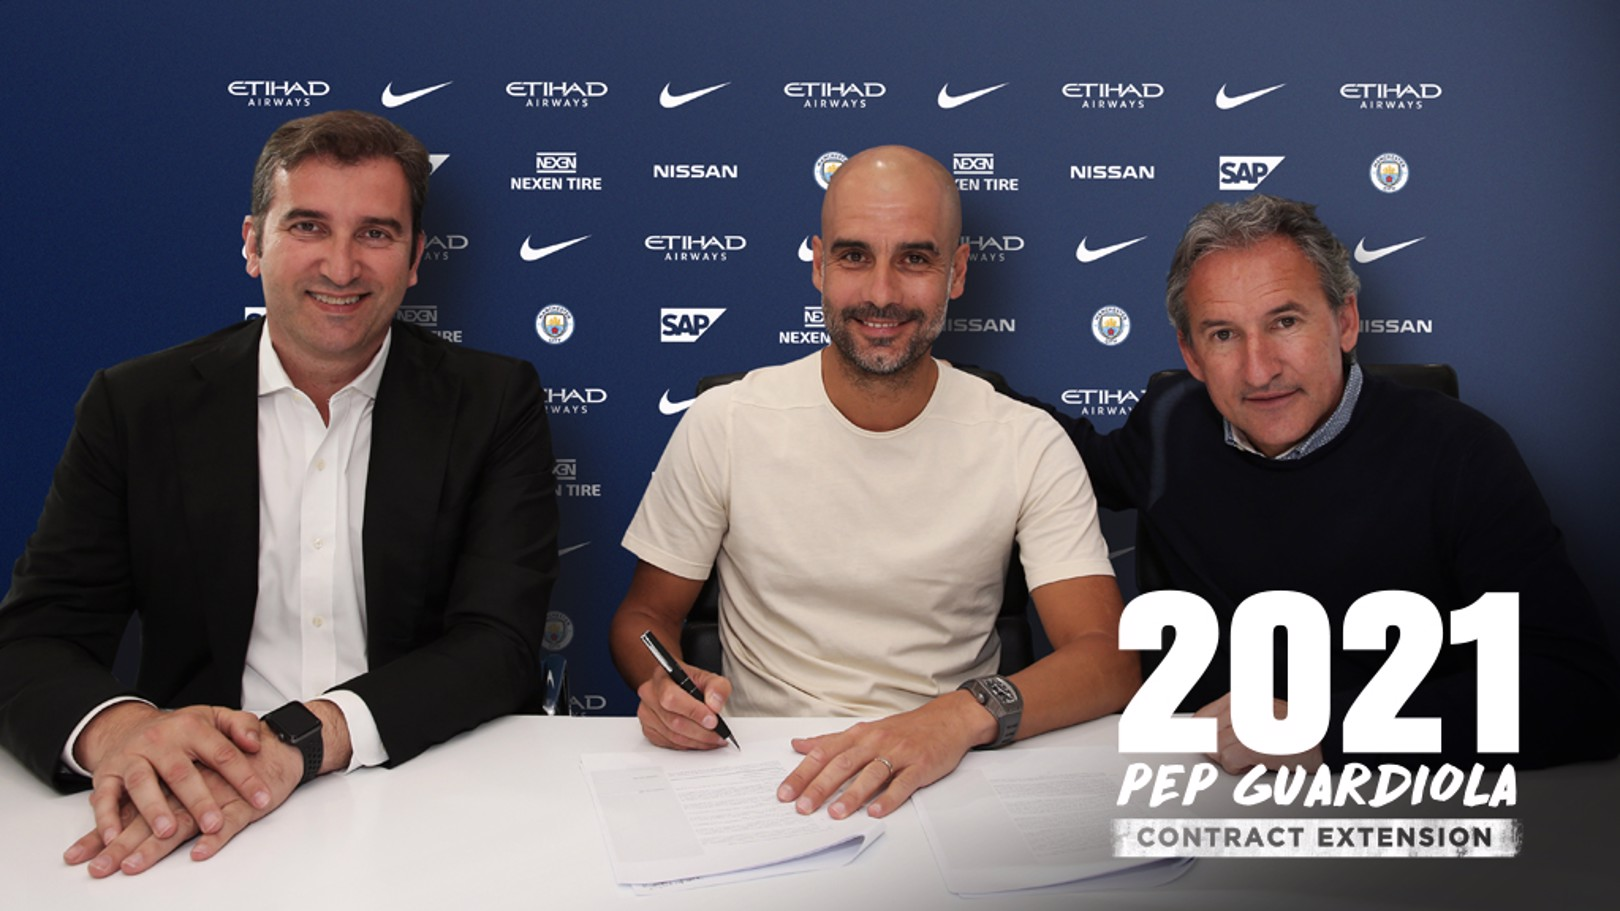 2021: Guardiola has committed himself to City until the summer of 2021